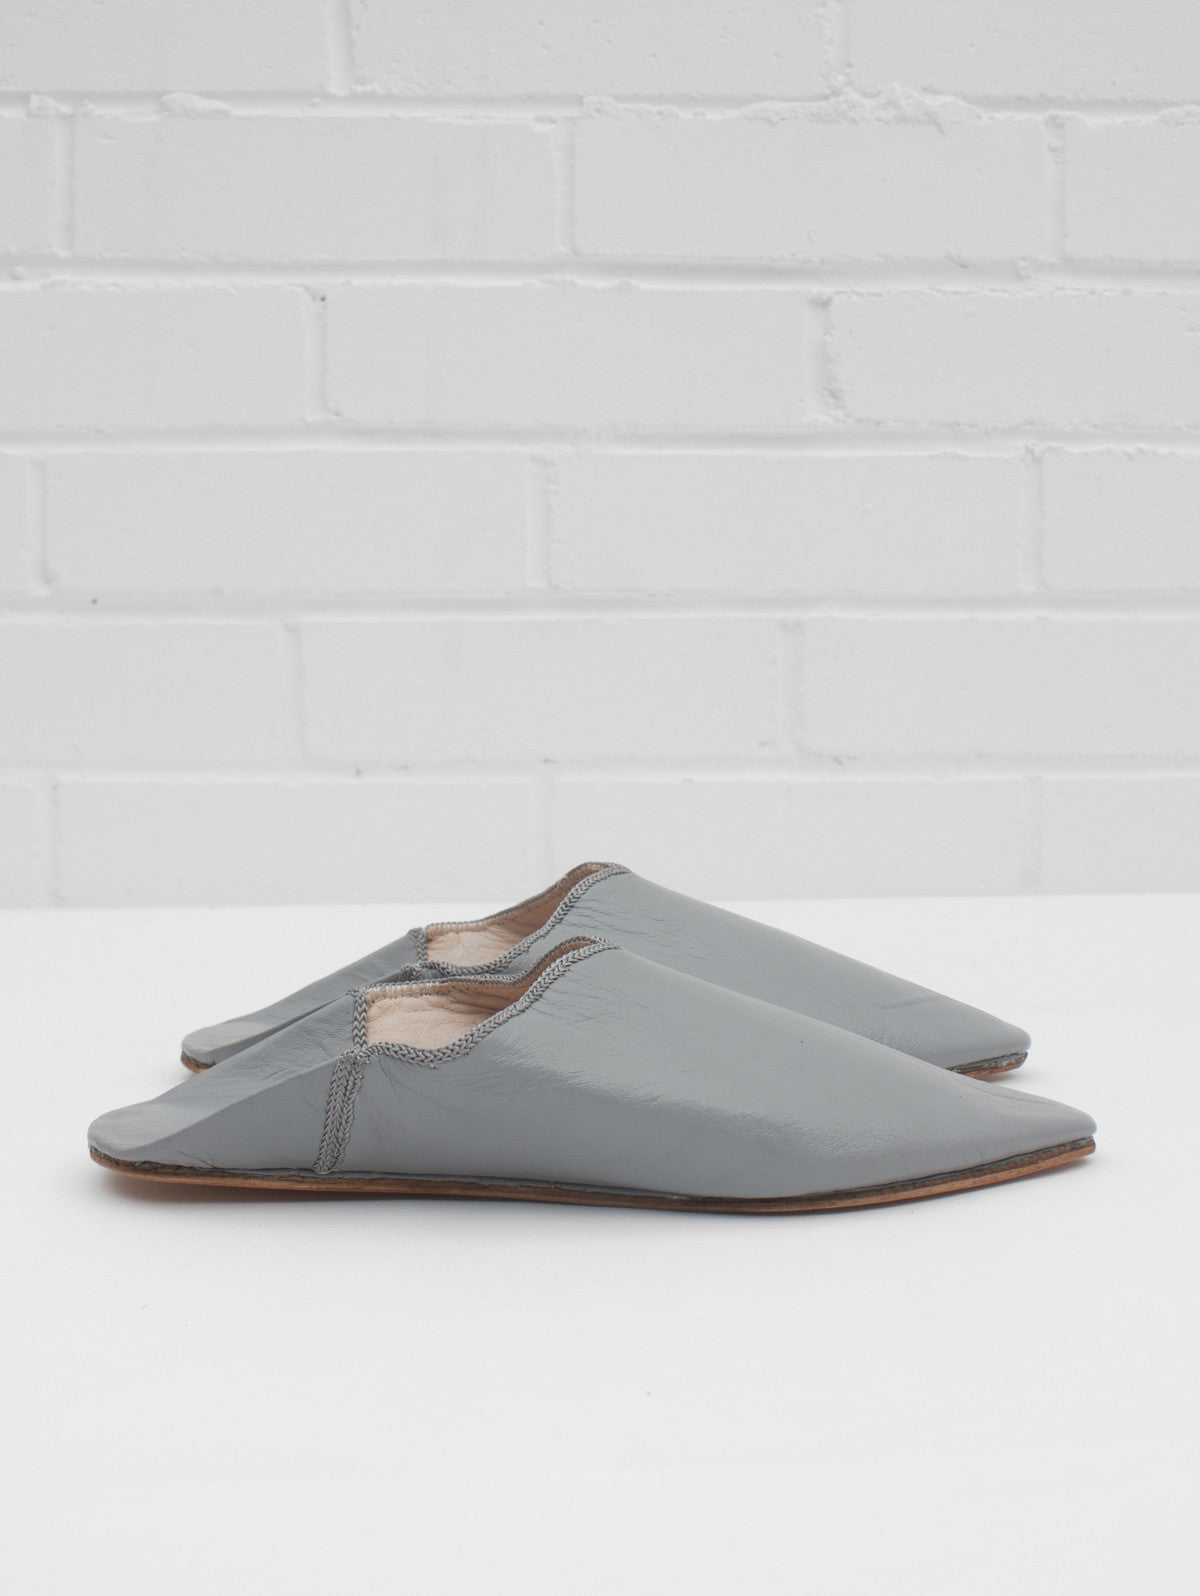 Moroccan Plain Pointed Babouche Slippers, Grey